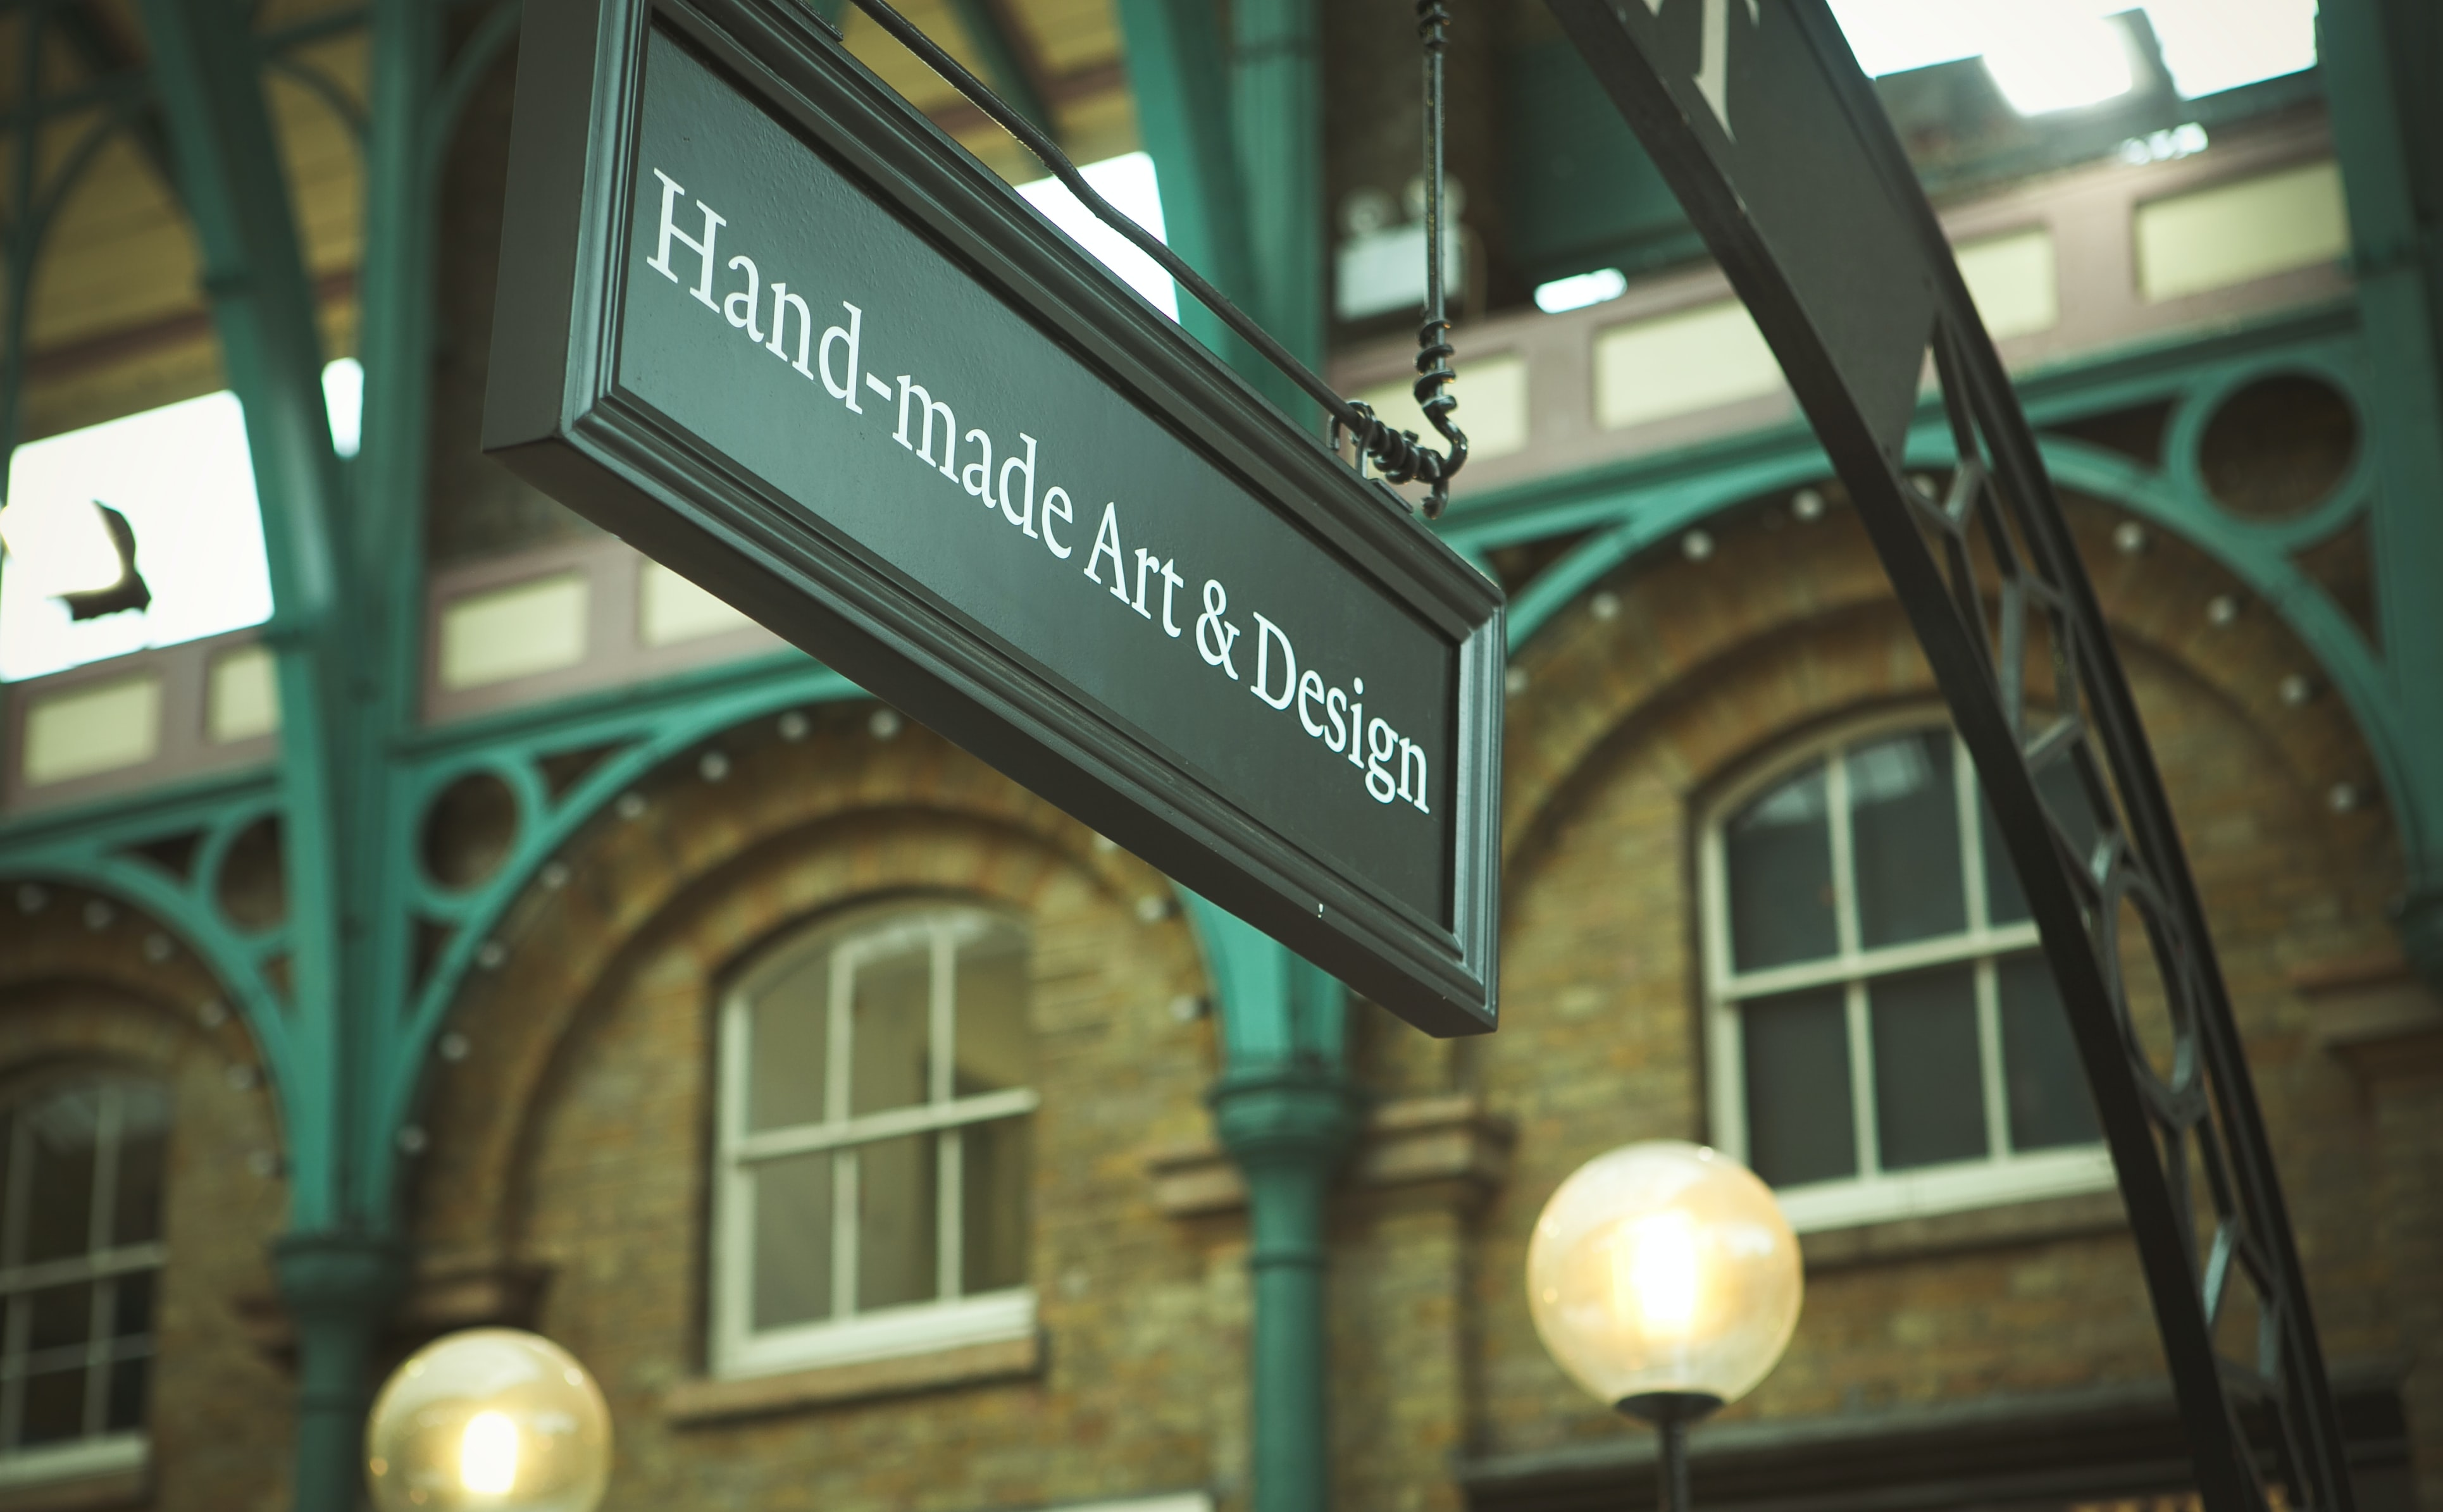 Black hand-made art & design sign with brick walls in Covent Garden, London